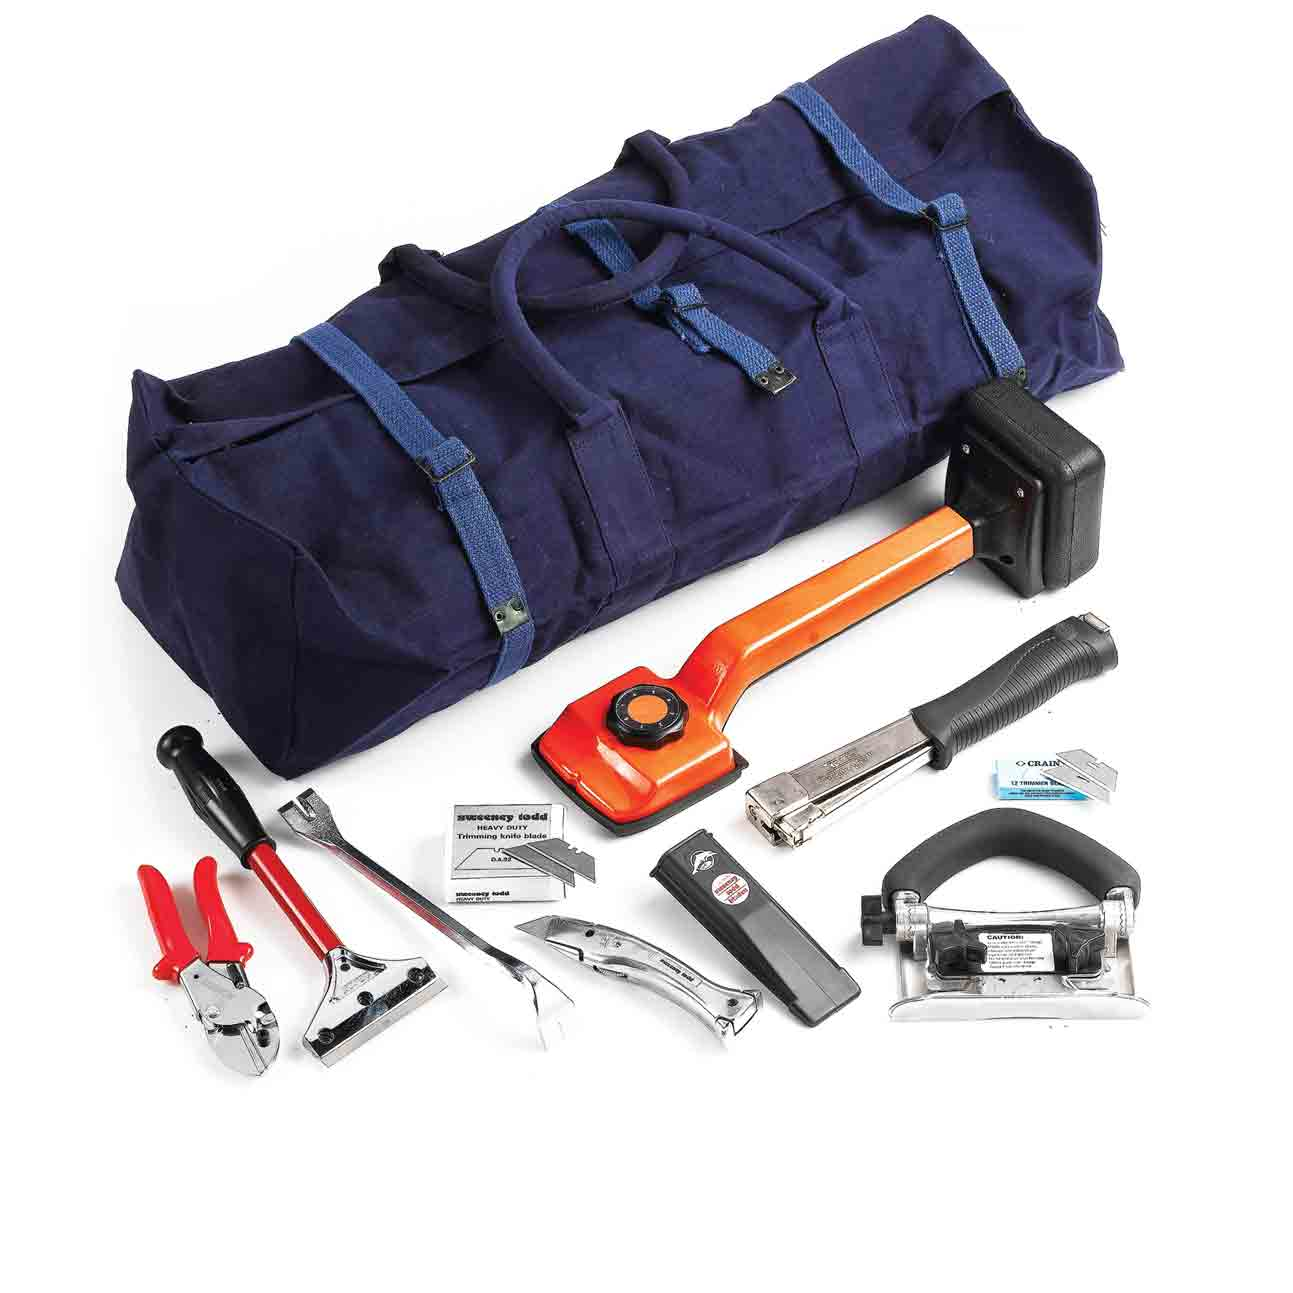 KITS - Flooring Carpet fitter Leister Tool Kits